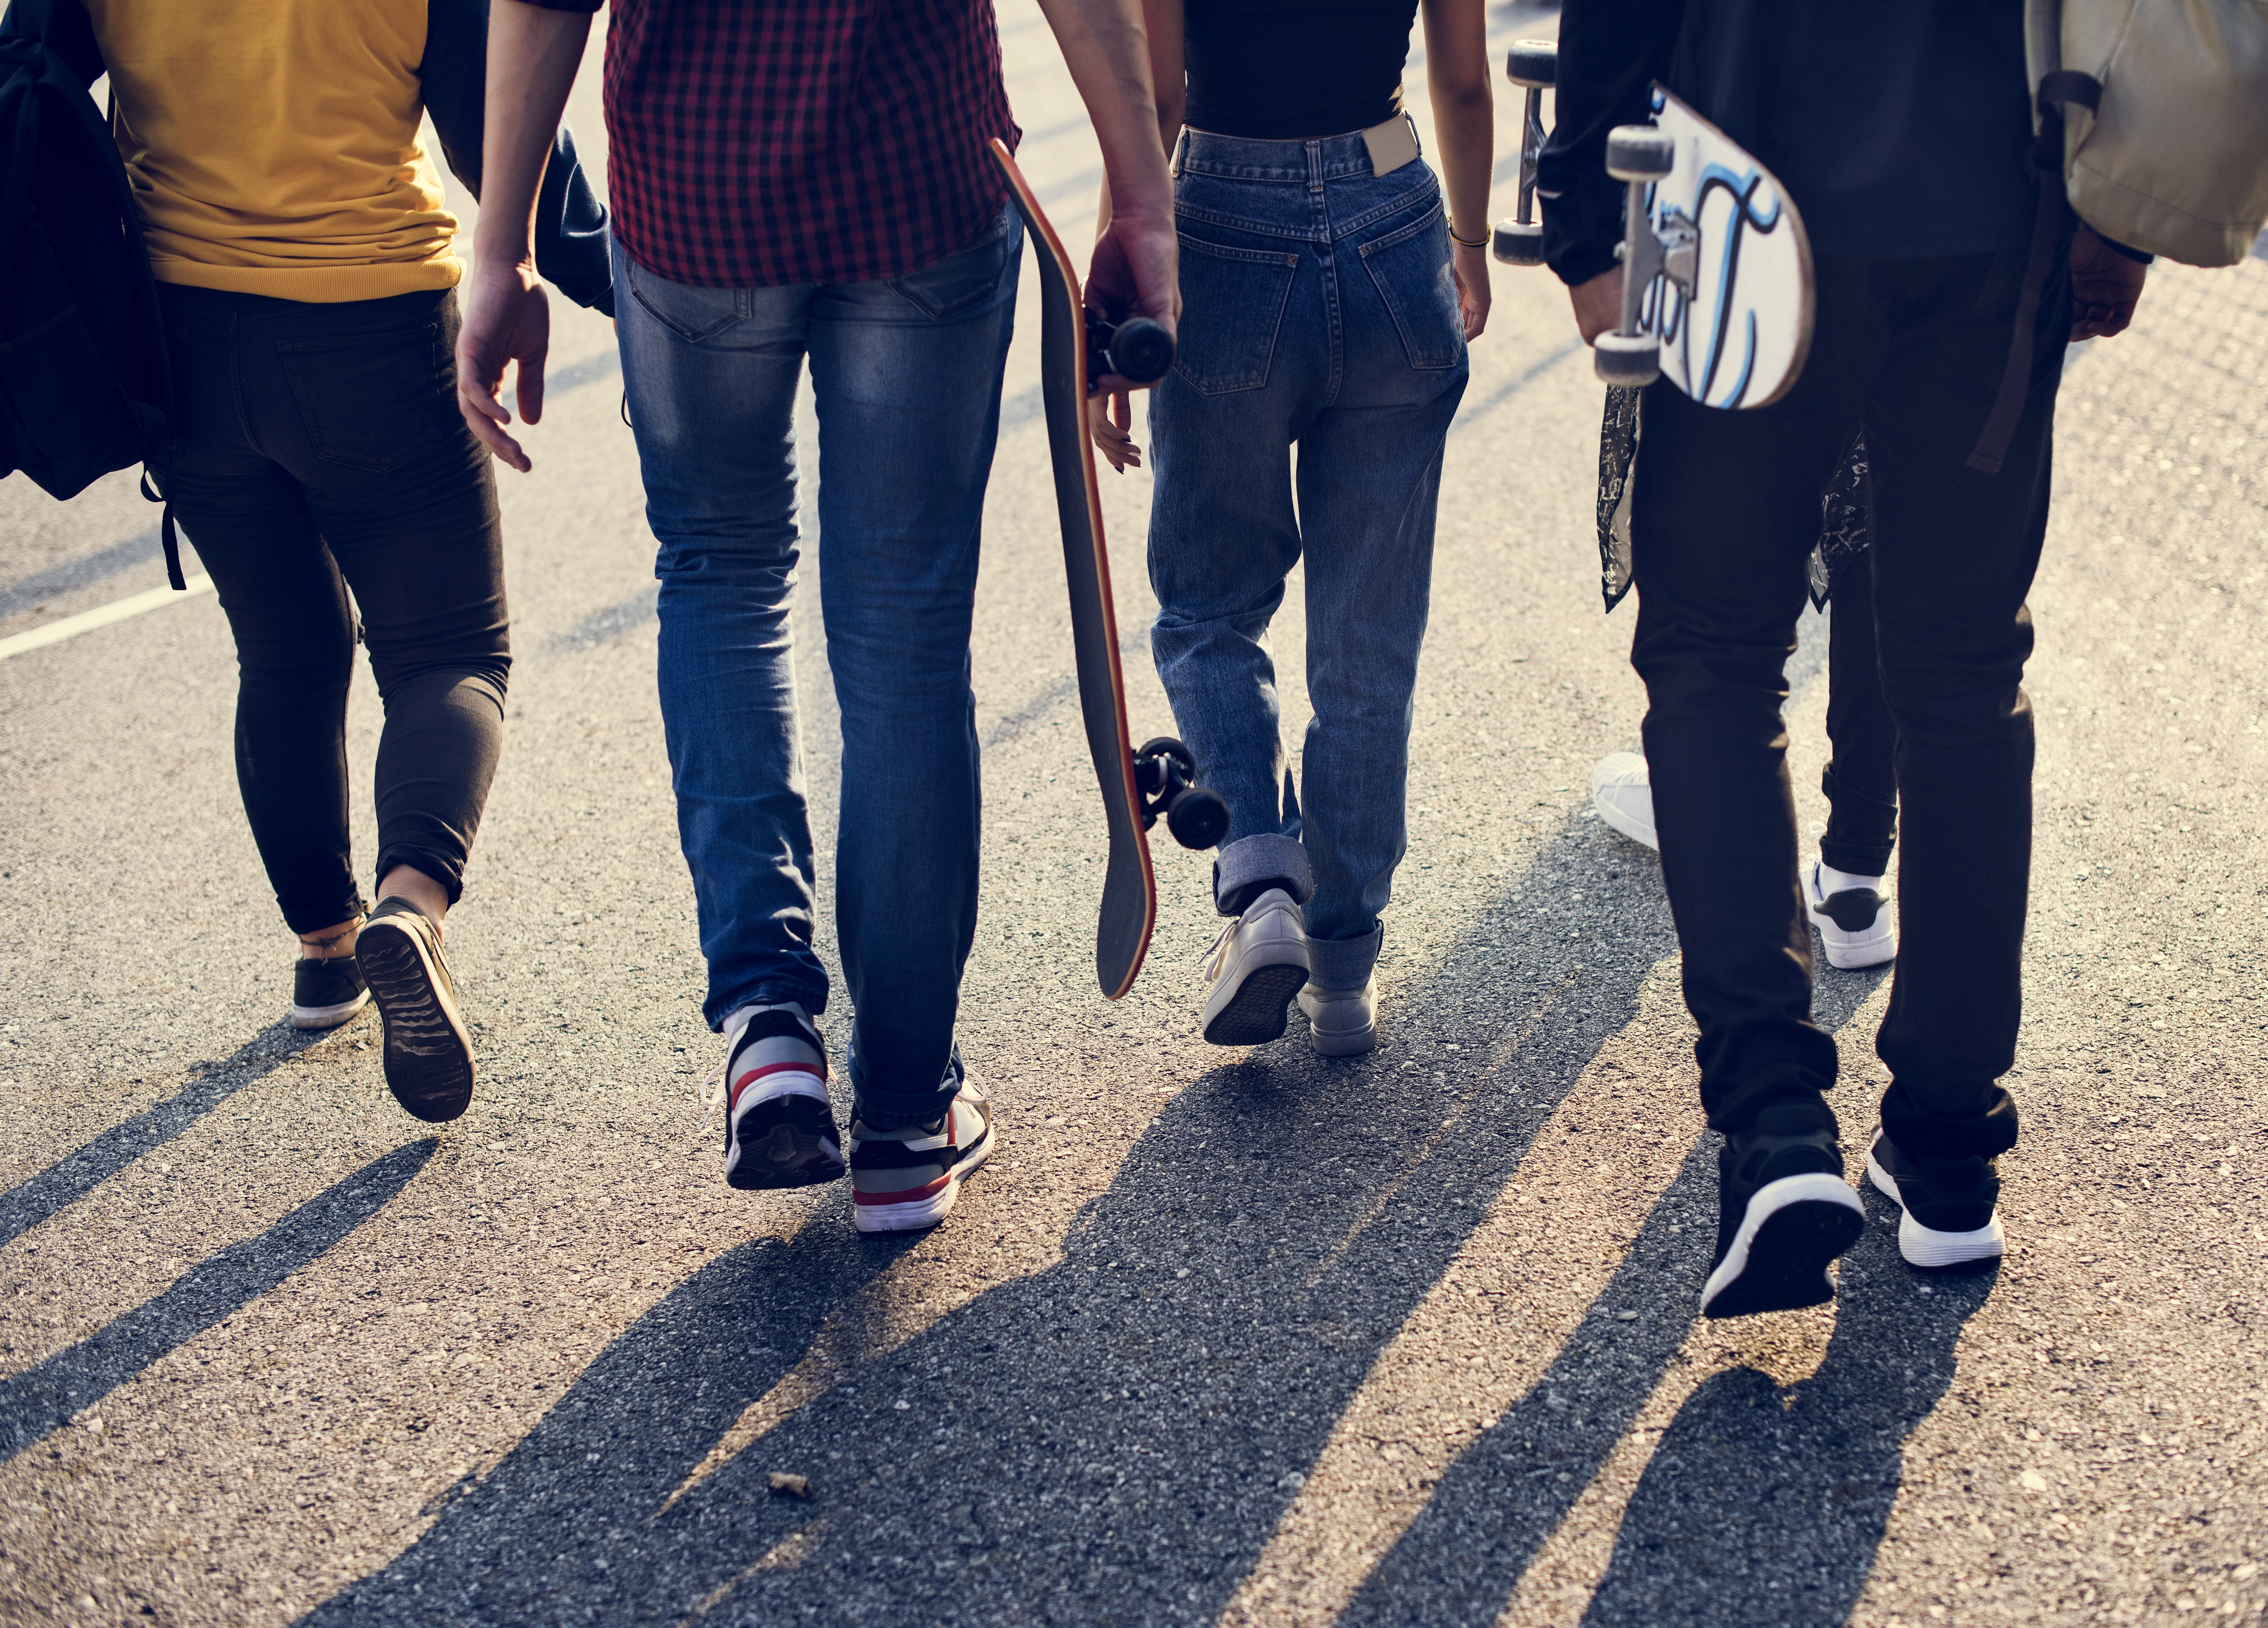 What Do Unschooled Teens Do All Day?